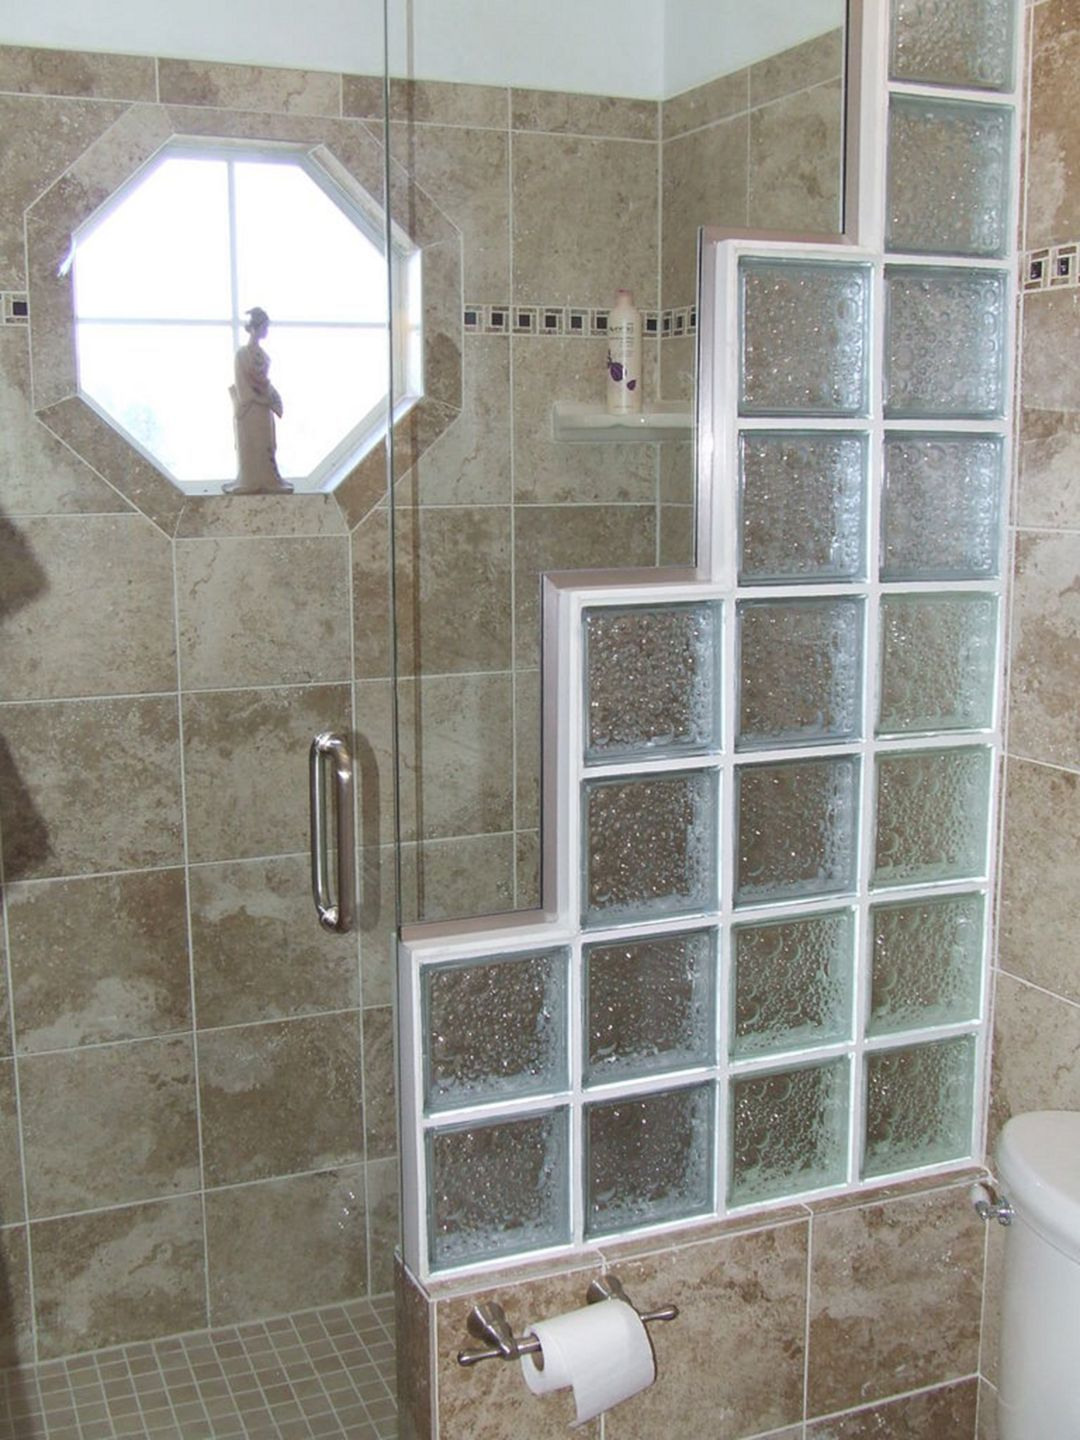 Nice 25 Awesome Glass Block Shower Ideas To Increase Your Bathroom Beautiful Https Decoredo Com 1762 Glass Block Shower Small Bathroom Bathroom Design Small